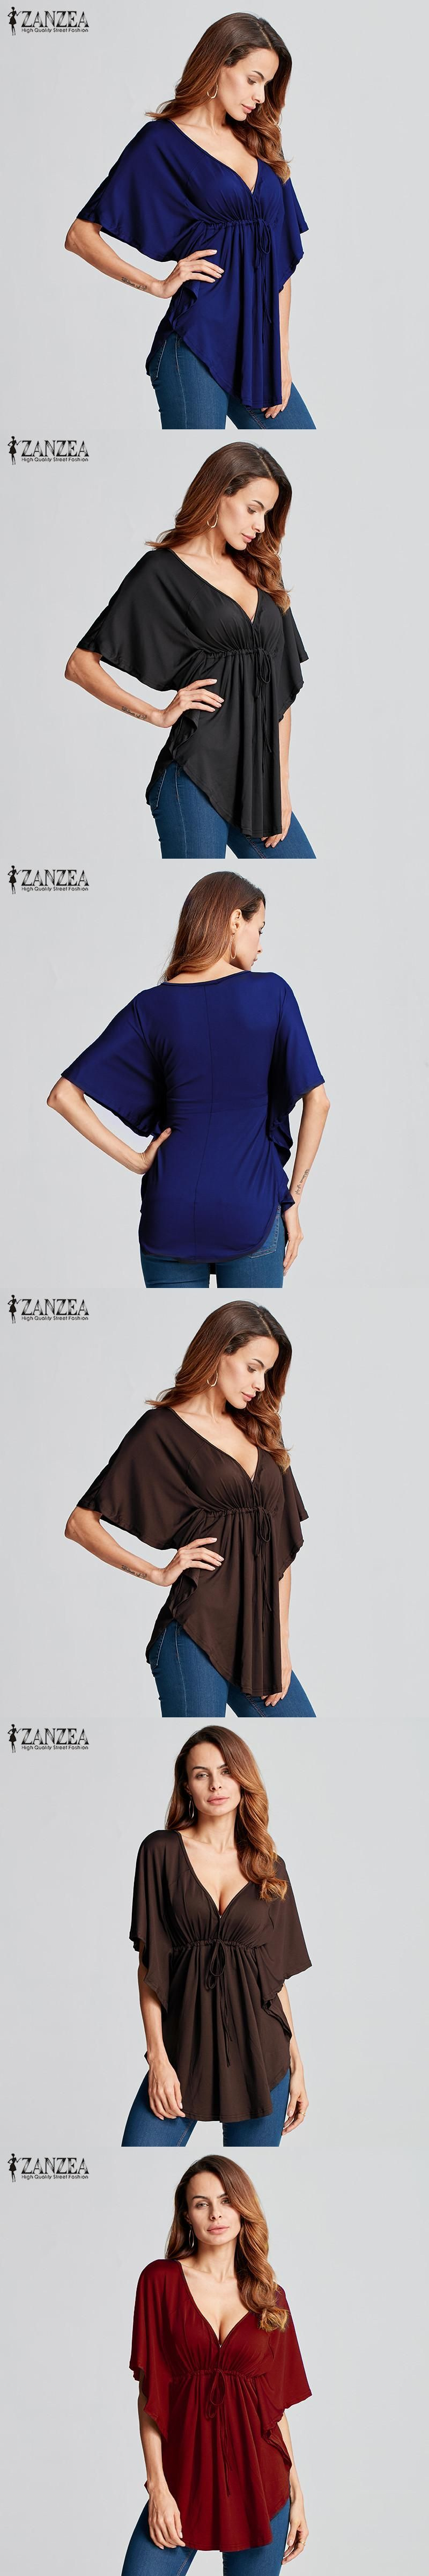 46c92145d7b Zanzea Summer Women Trend 2017 Sexy Casual Loose V-neck Batwing Sleeve Tops  Tee Solid